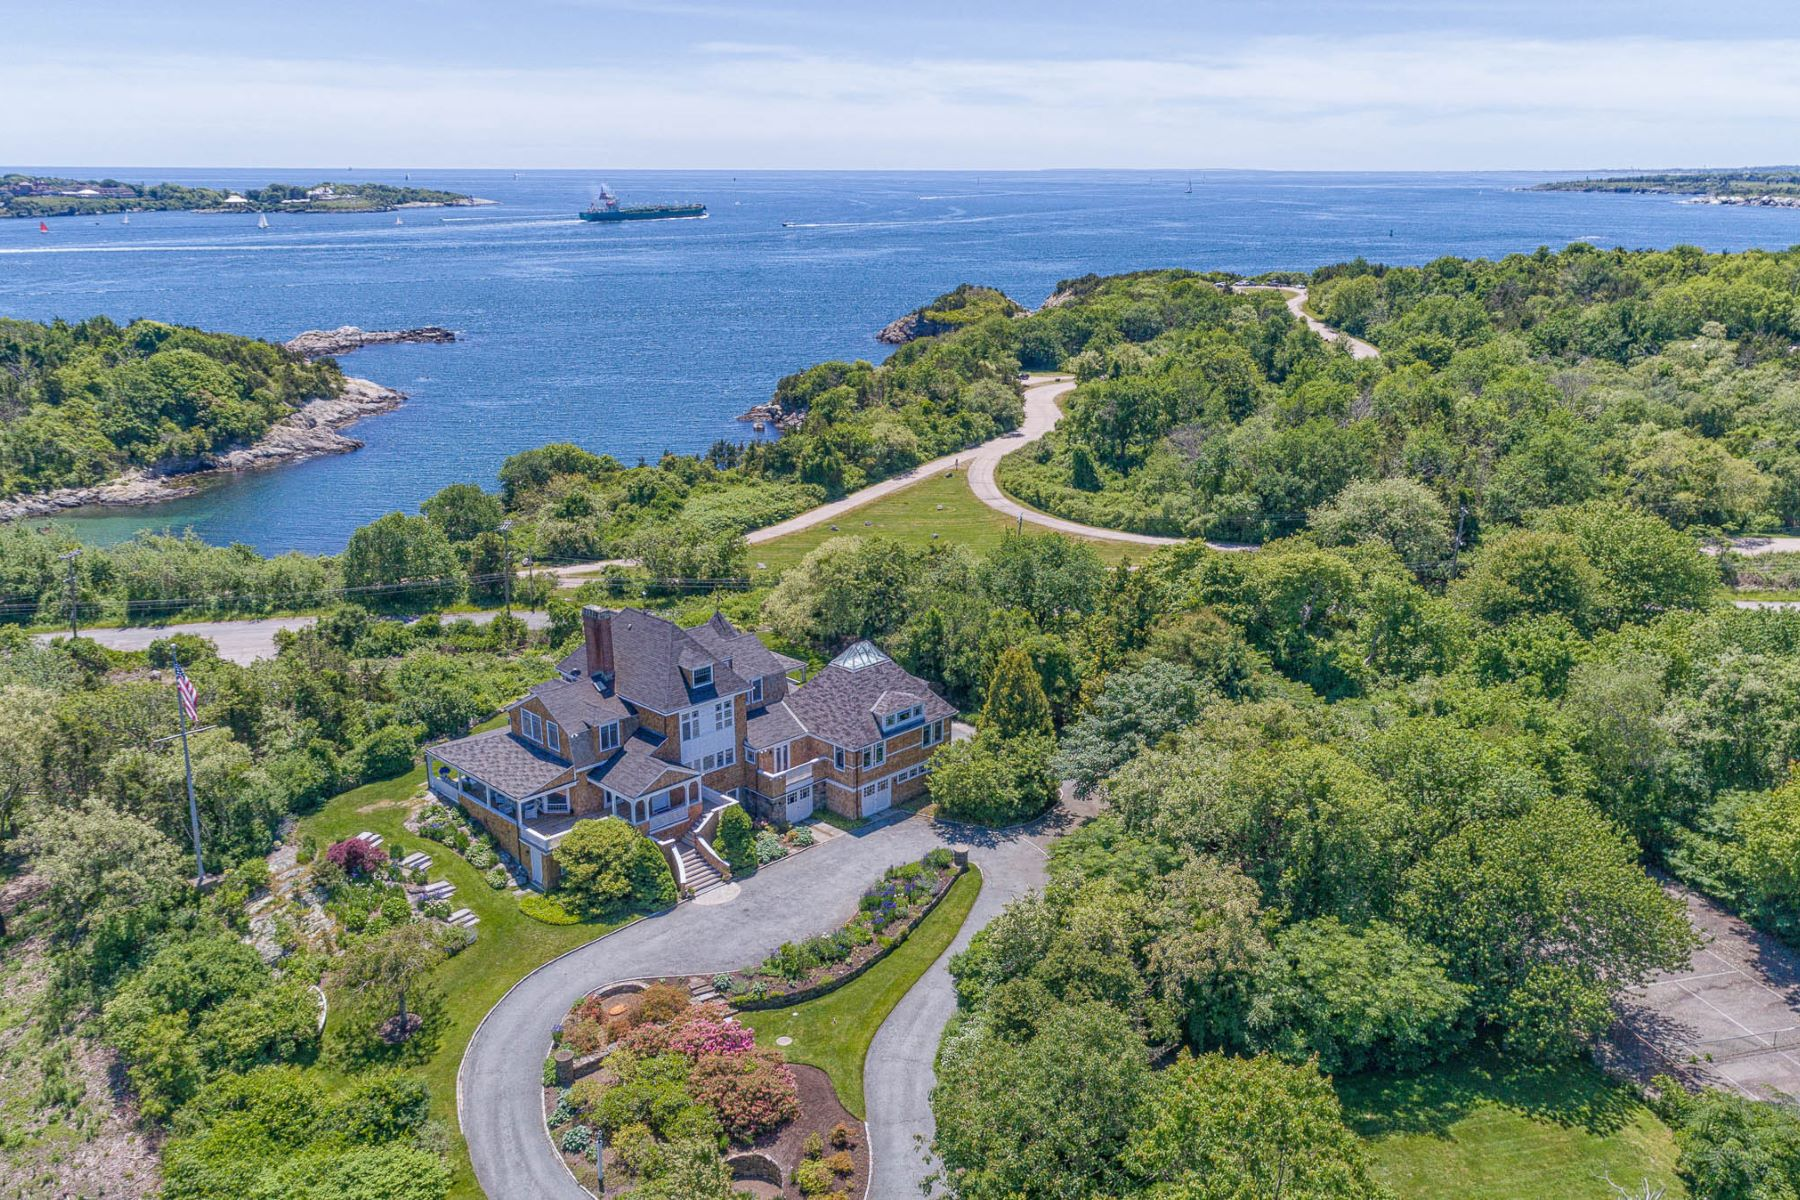 Single Family Homes for Sale at 27 Newport Street, Jamestown, RI 27 Newport Street Jamestown, Rhode Island 02835 United States